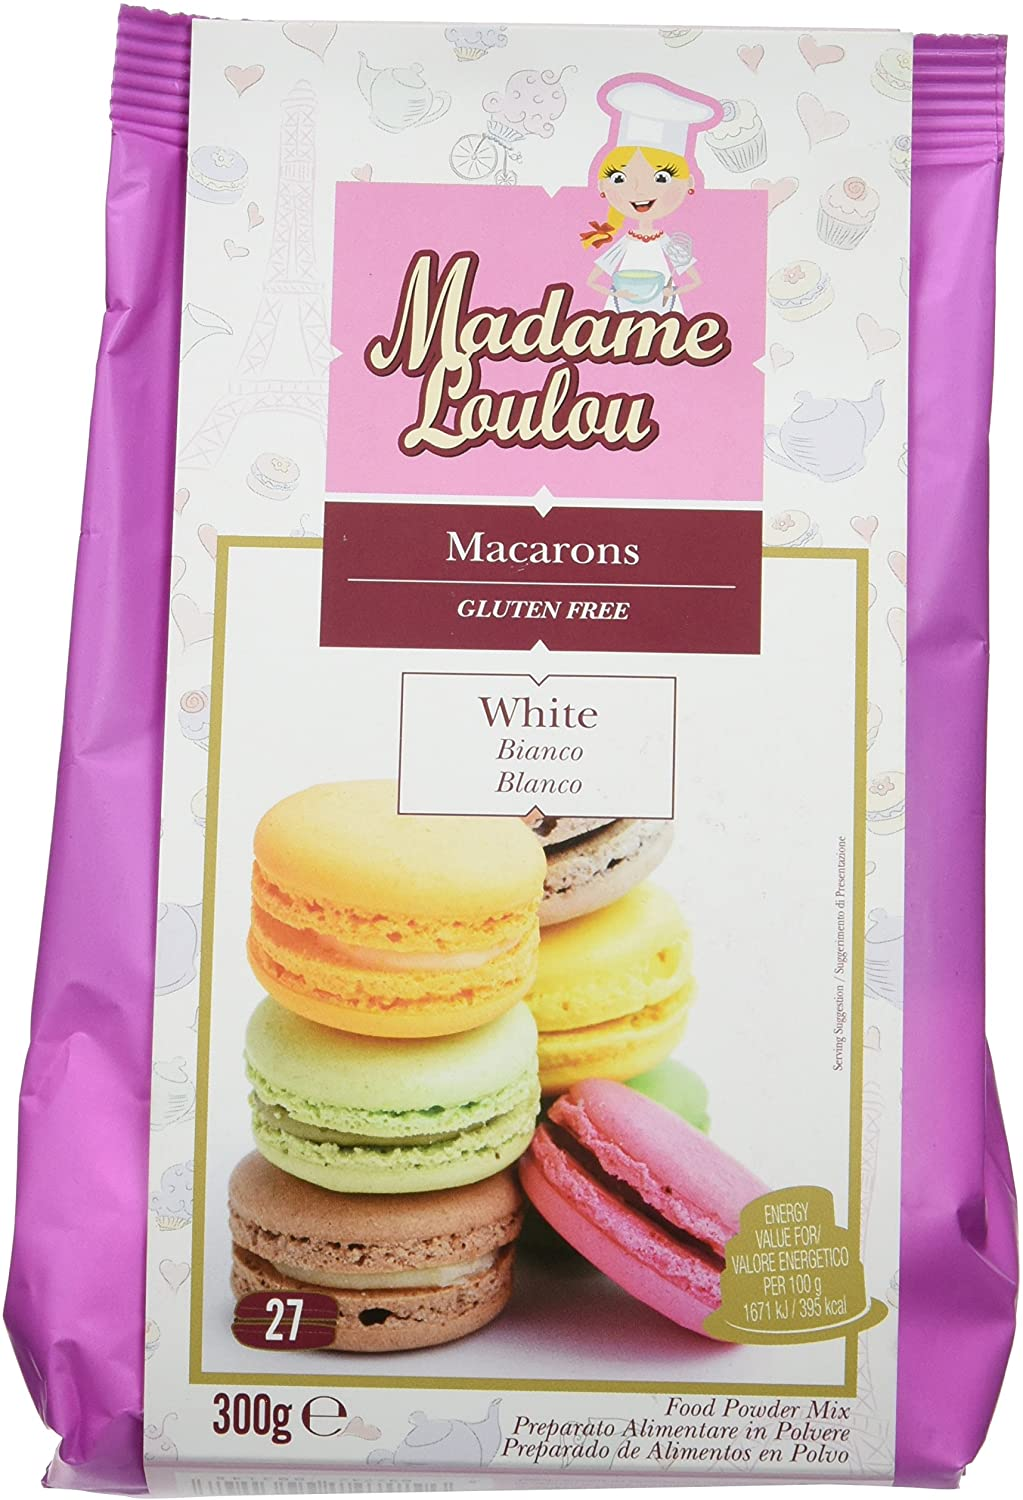 MIX MACARONS CULOARE VIOLET ML5160-6 300G MADAM